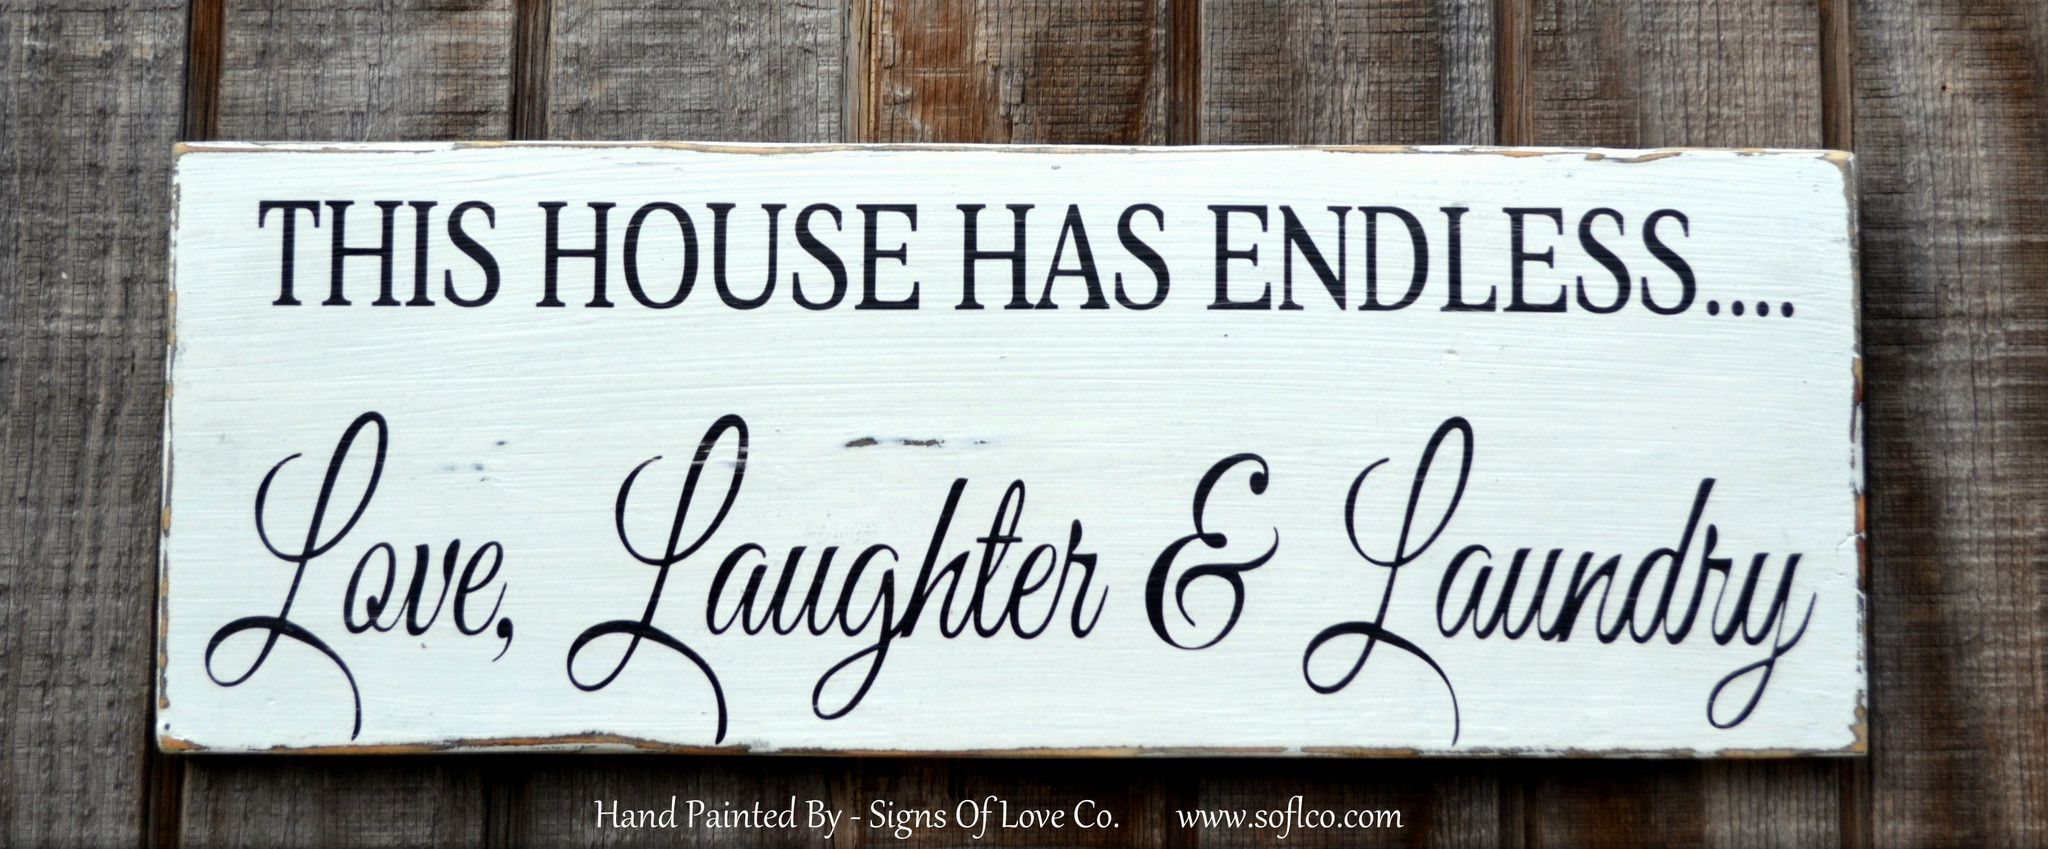 Laundry Room Rustic Home Décor Sign Carova Beach Crafts Quotes Endless Love Laughter Laundry Custom House Address Door Hanger Wooden Signs Farm House C